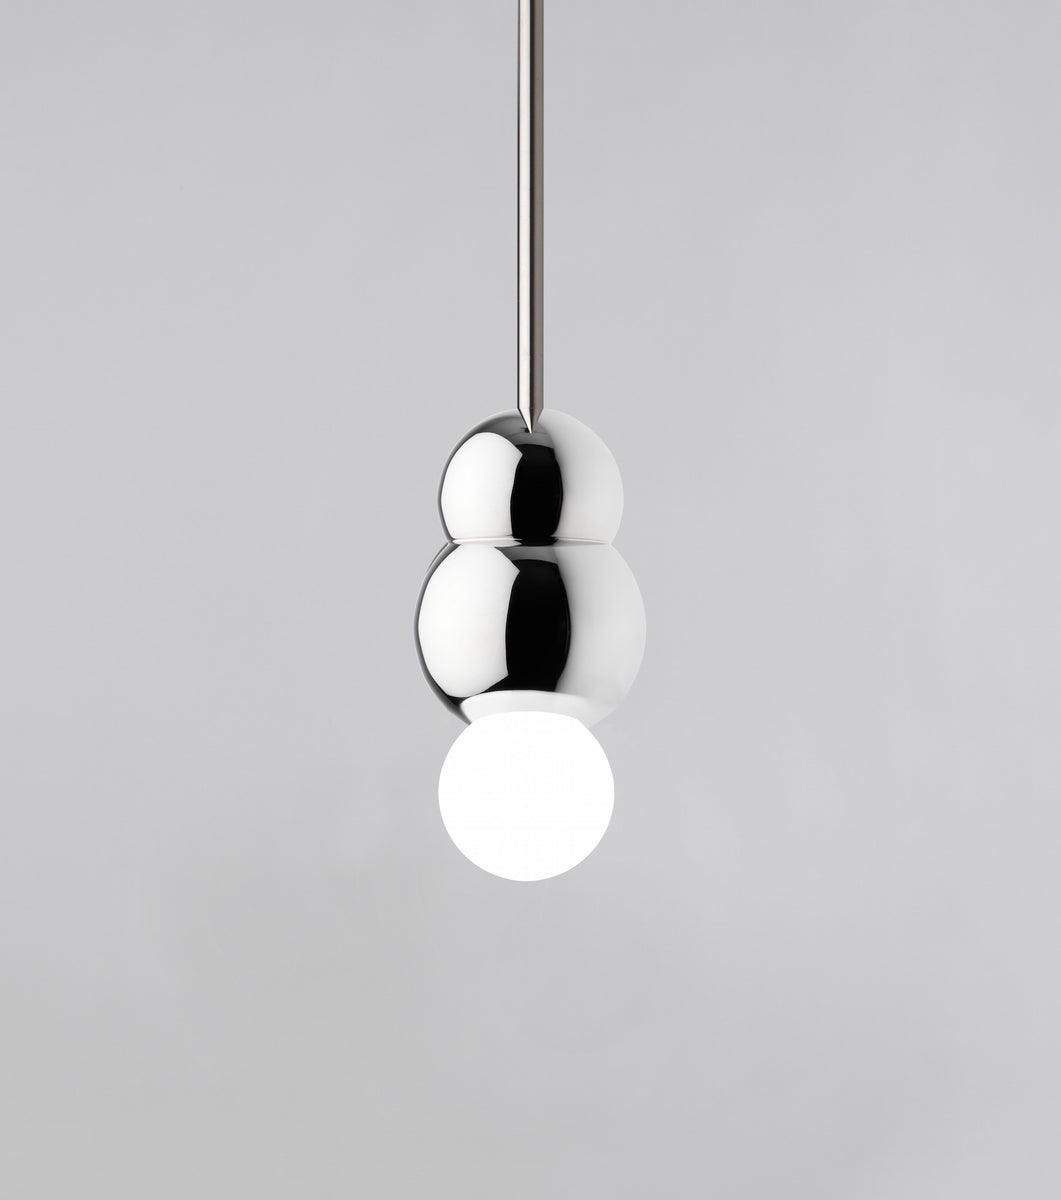 Glistening Ball Light Small Pendant Rod Polished Nickel Michael Anastassiades - Image 1